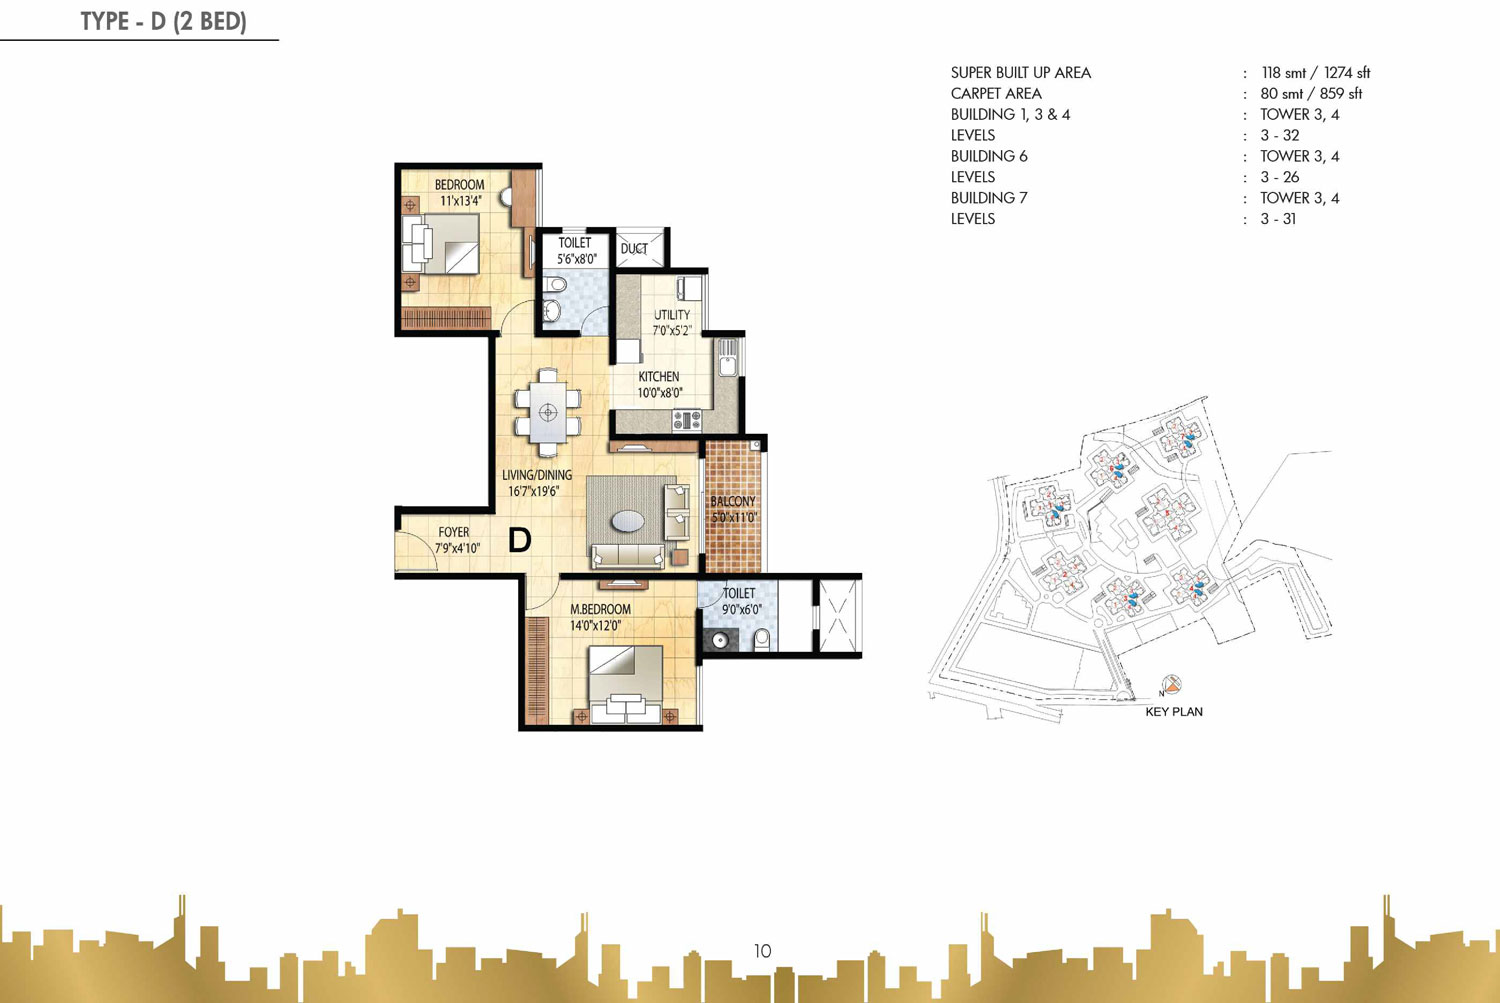 Type D - 2 Bed - 1274 Sq Ft